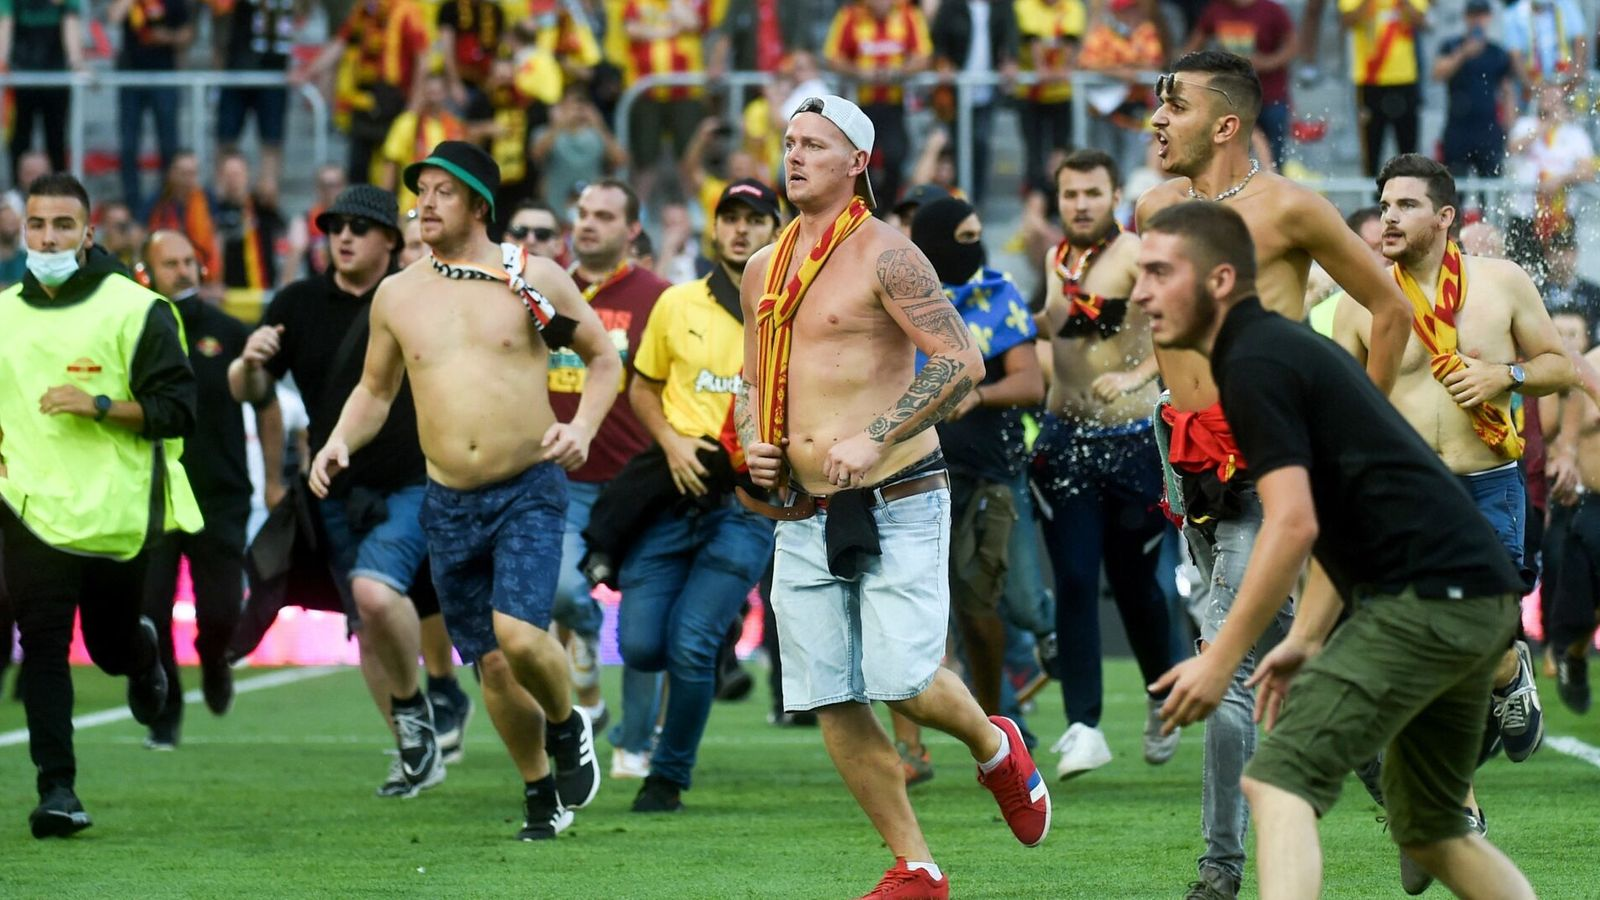 Crowd trouble mars Lens derby win over Lille, Bayern and Inter win big - European round-up